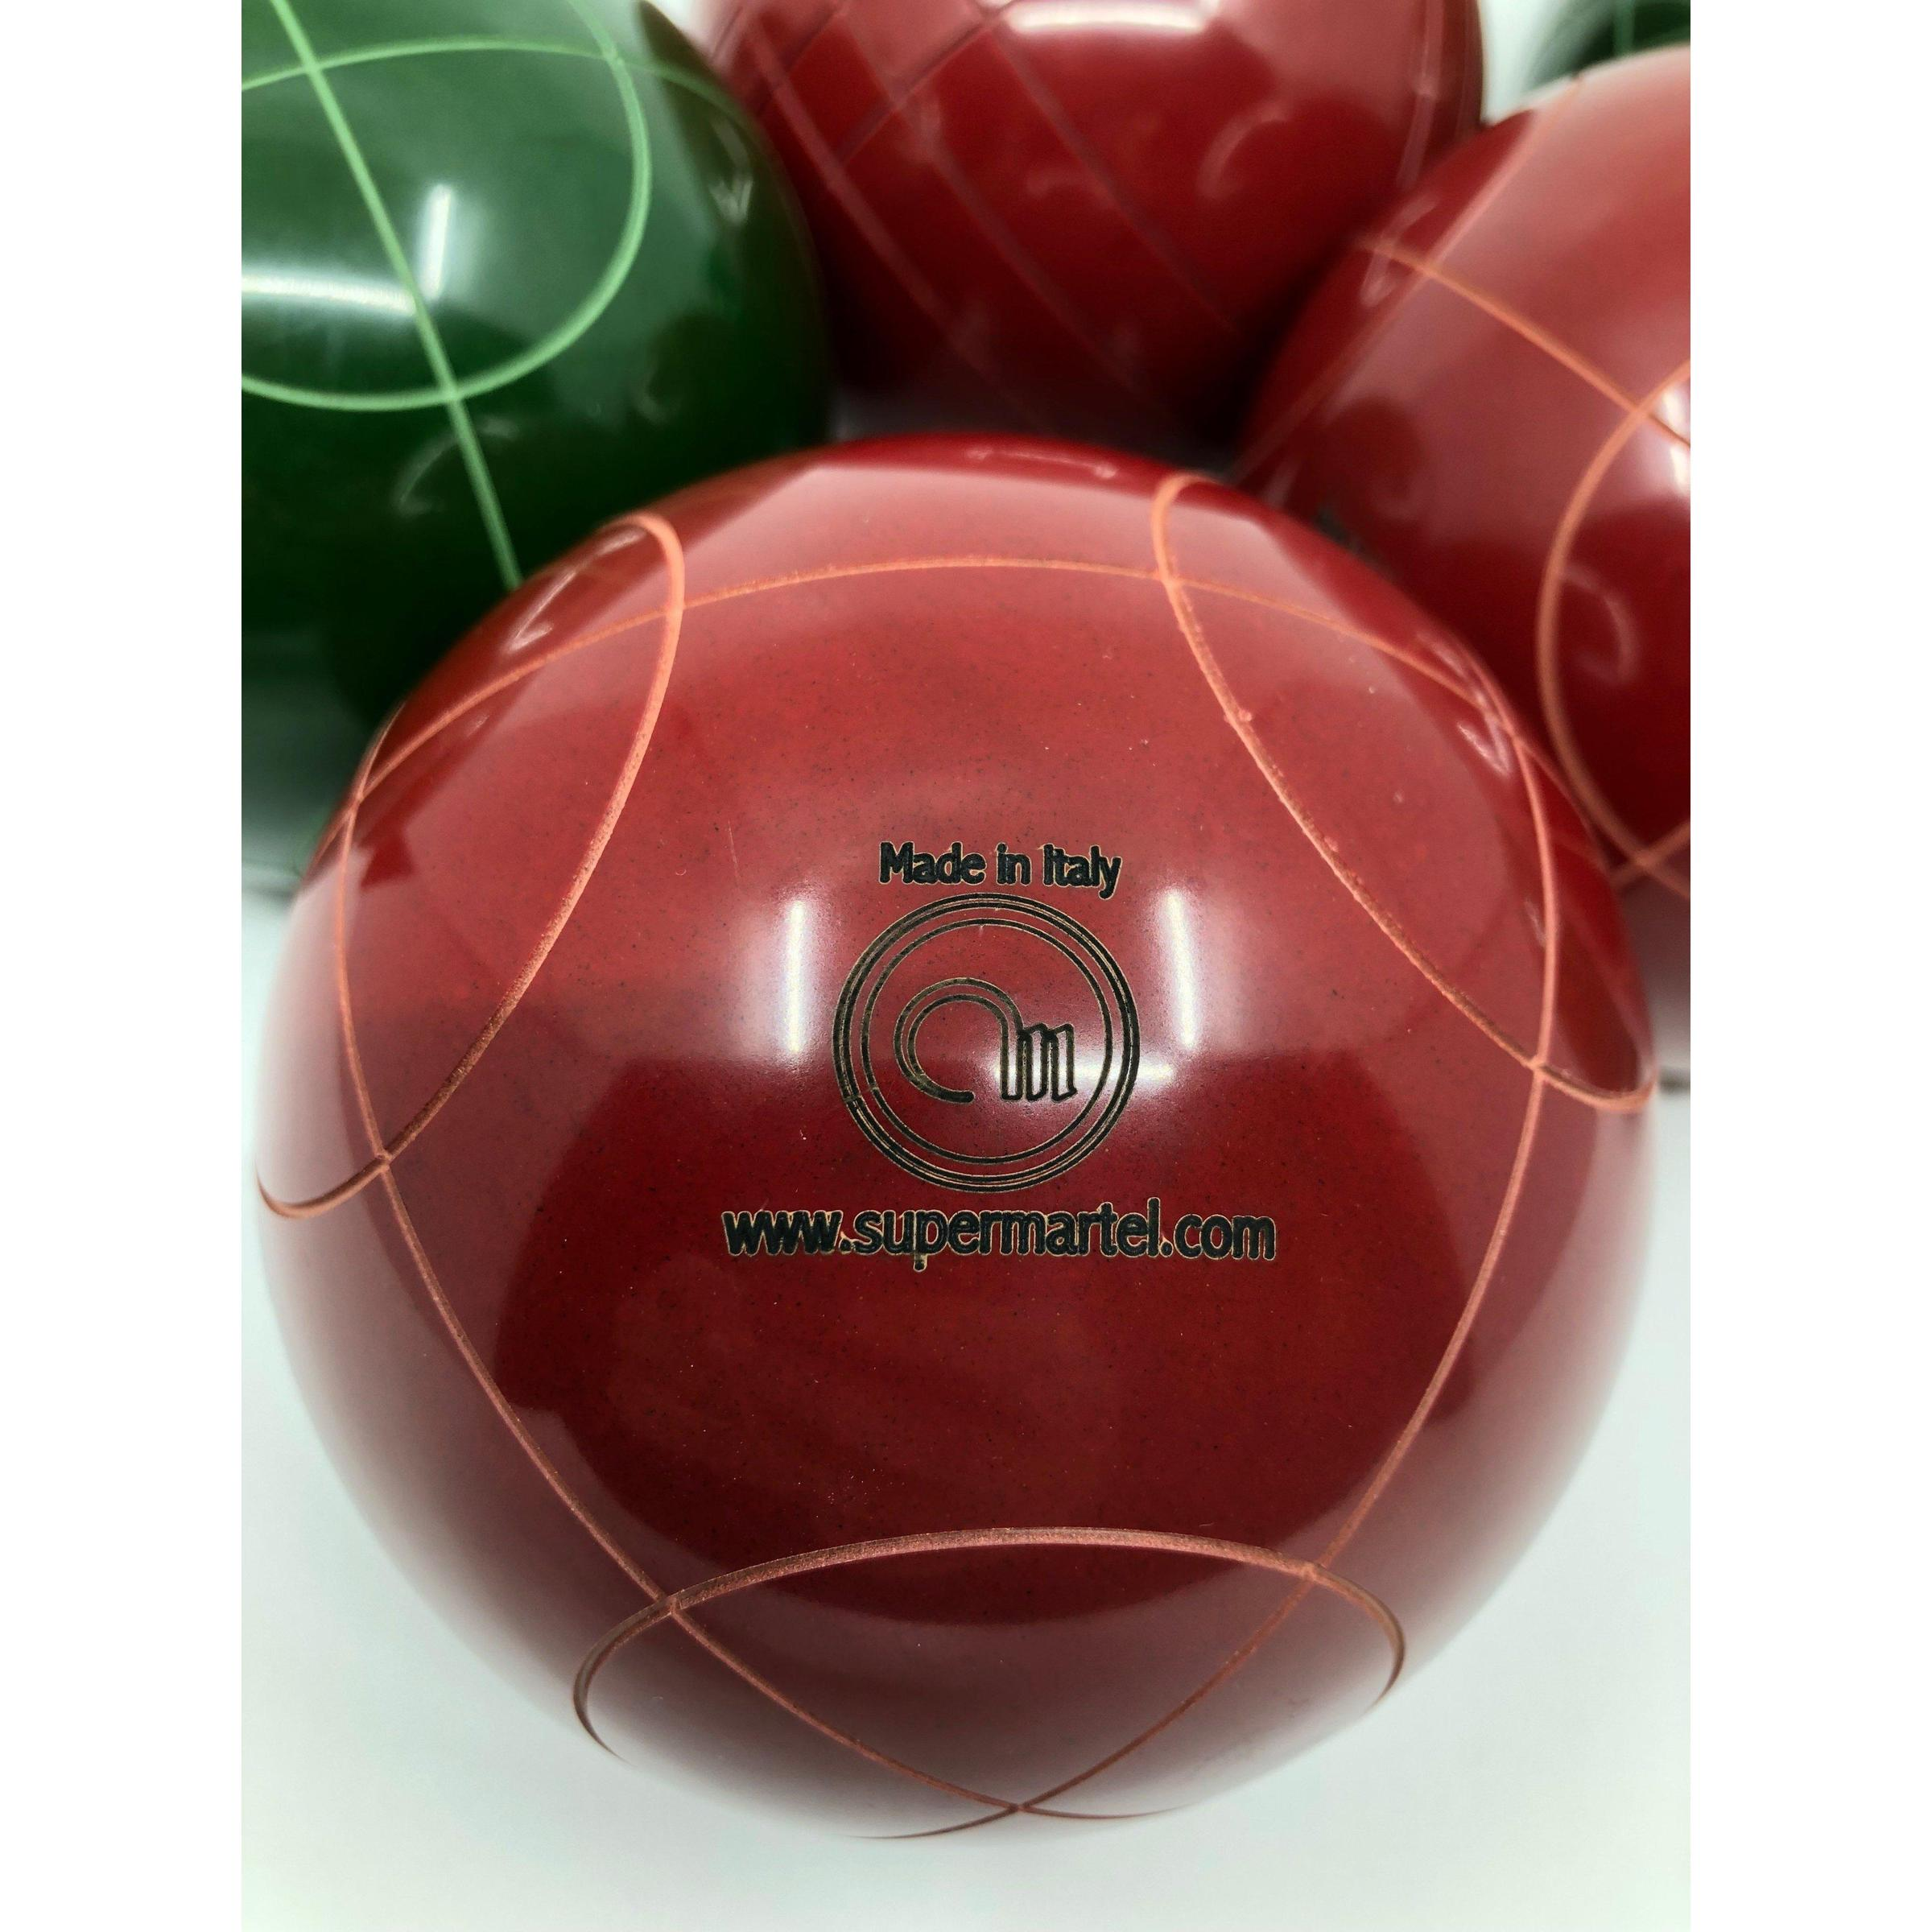 Super Martel Professional Bocce Ball Set 107mm Made in Italy Tournament Rated Bocce Balls